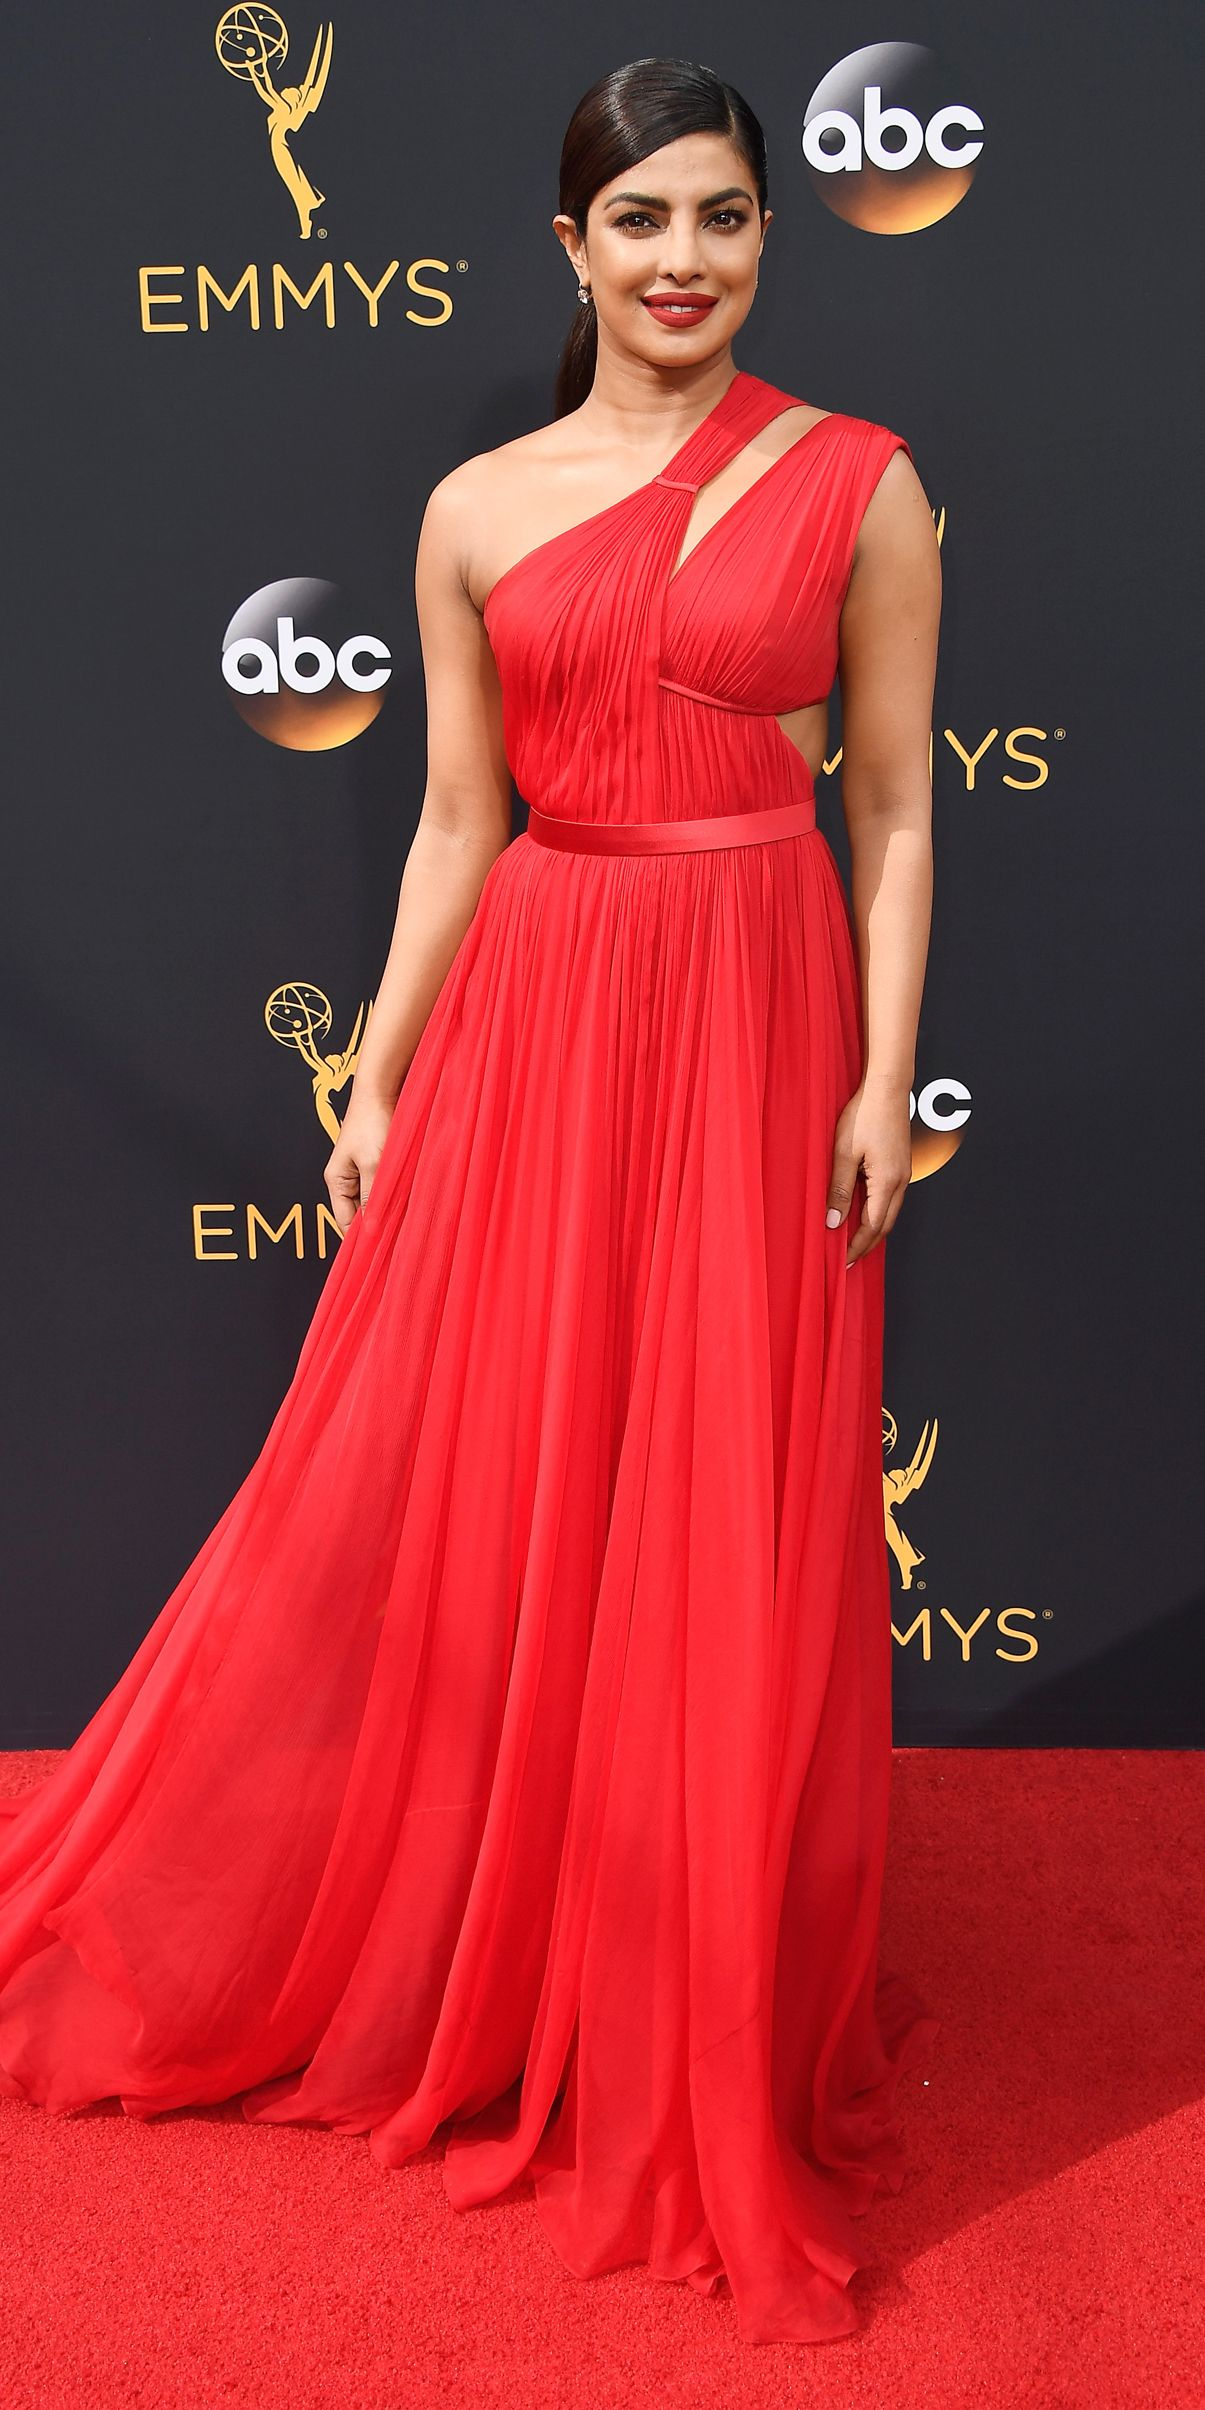 Ed Sheeran Roter Teppich See The Hottest Looks From The 2016 Emmy Awards Red Carpet